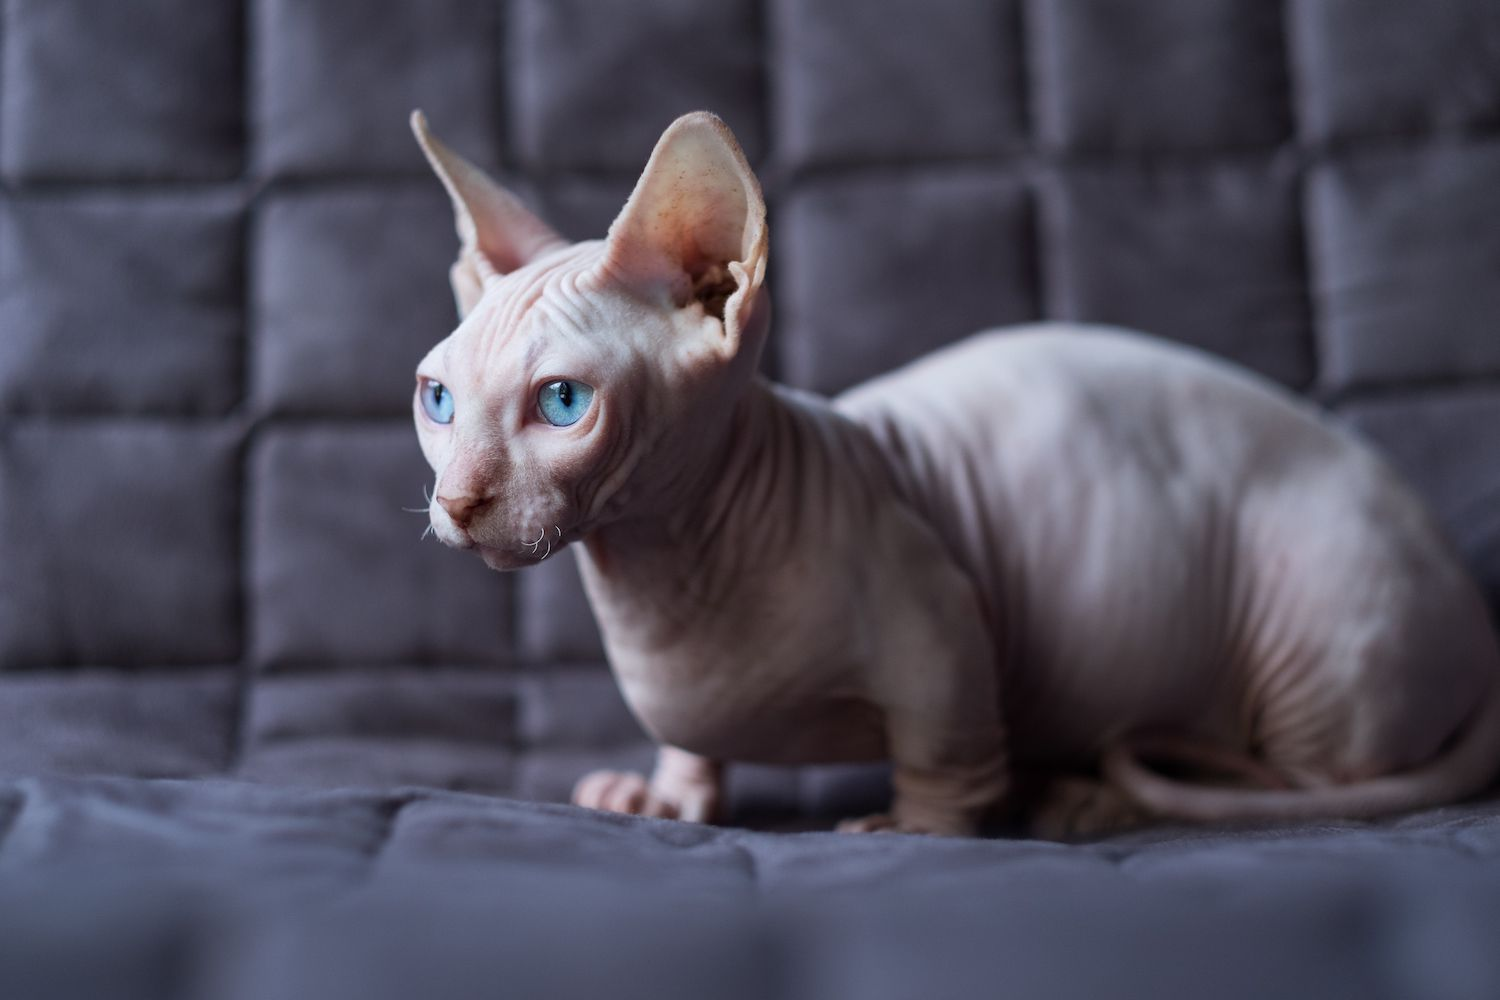 hairless cat sitting on couch